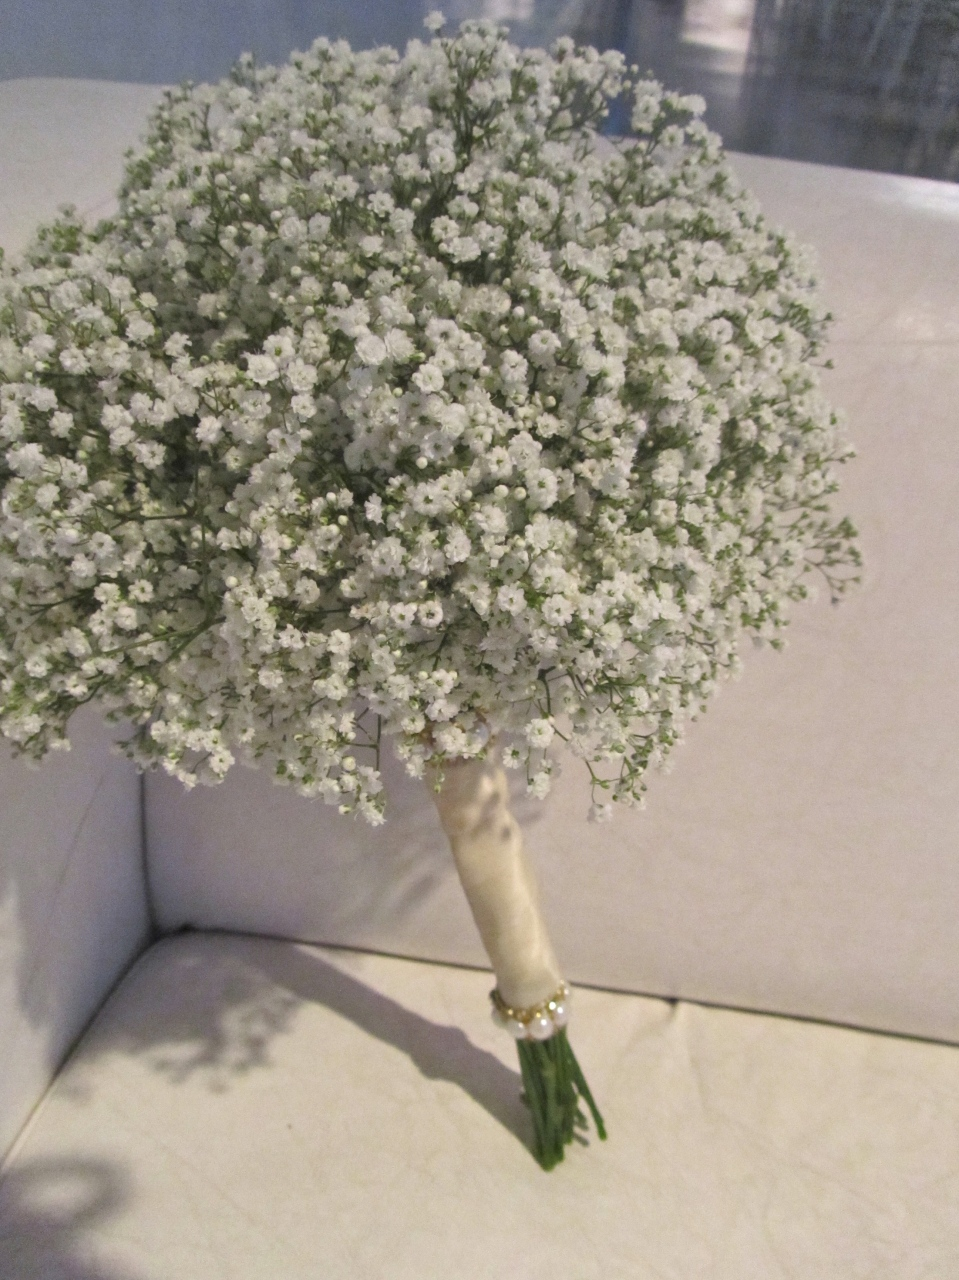 Bouquet of baby's breath